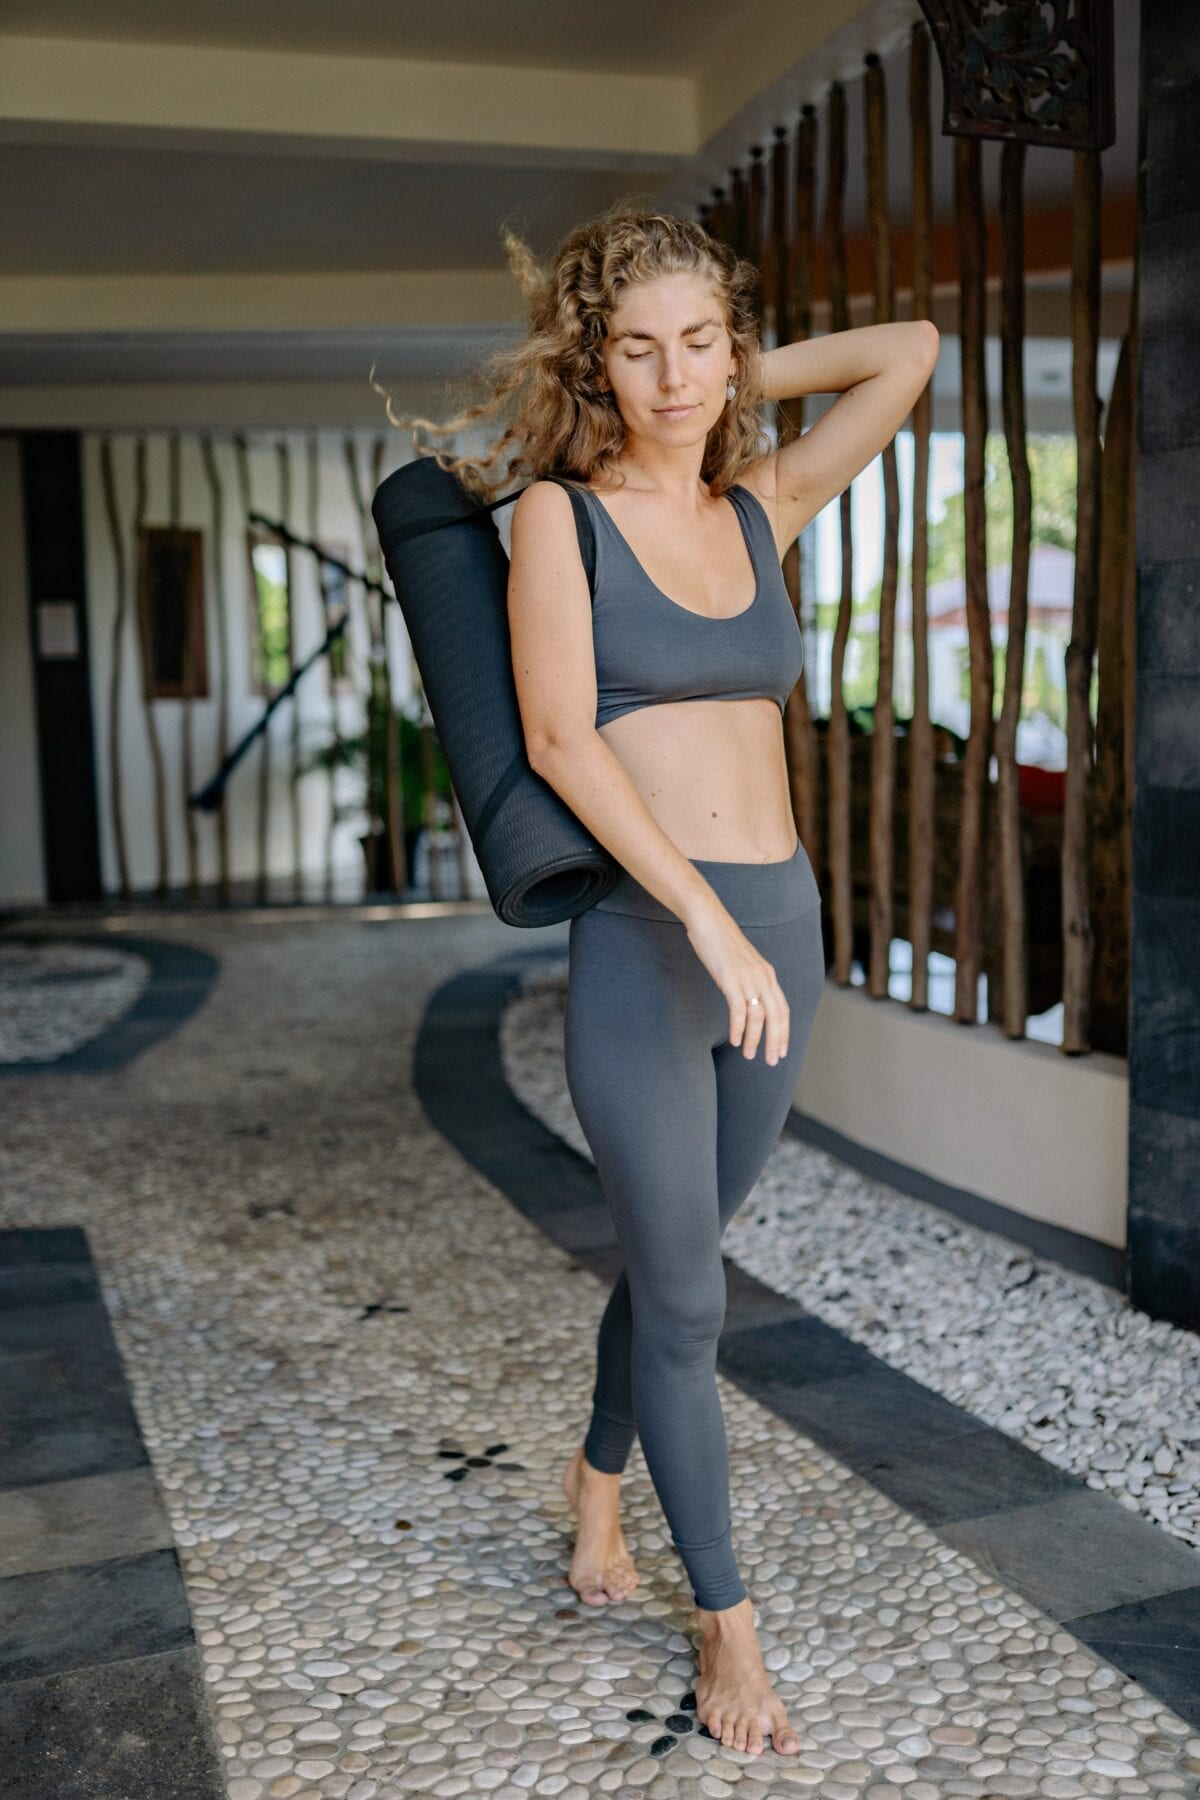 Sporty woman in sportswear with yoga mat on pathway